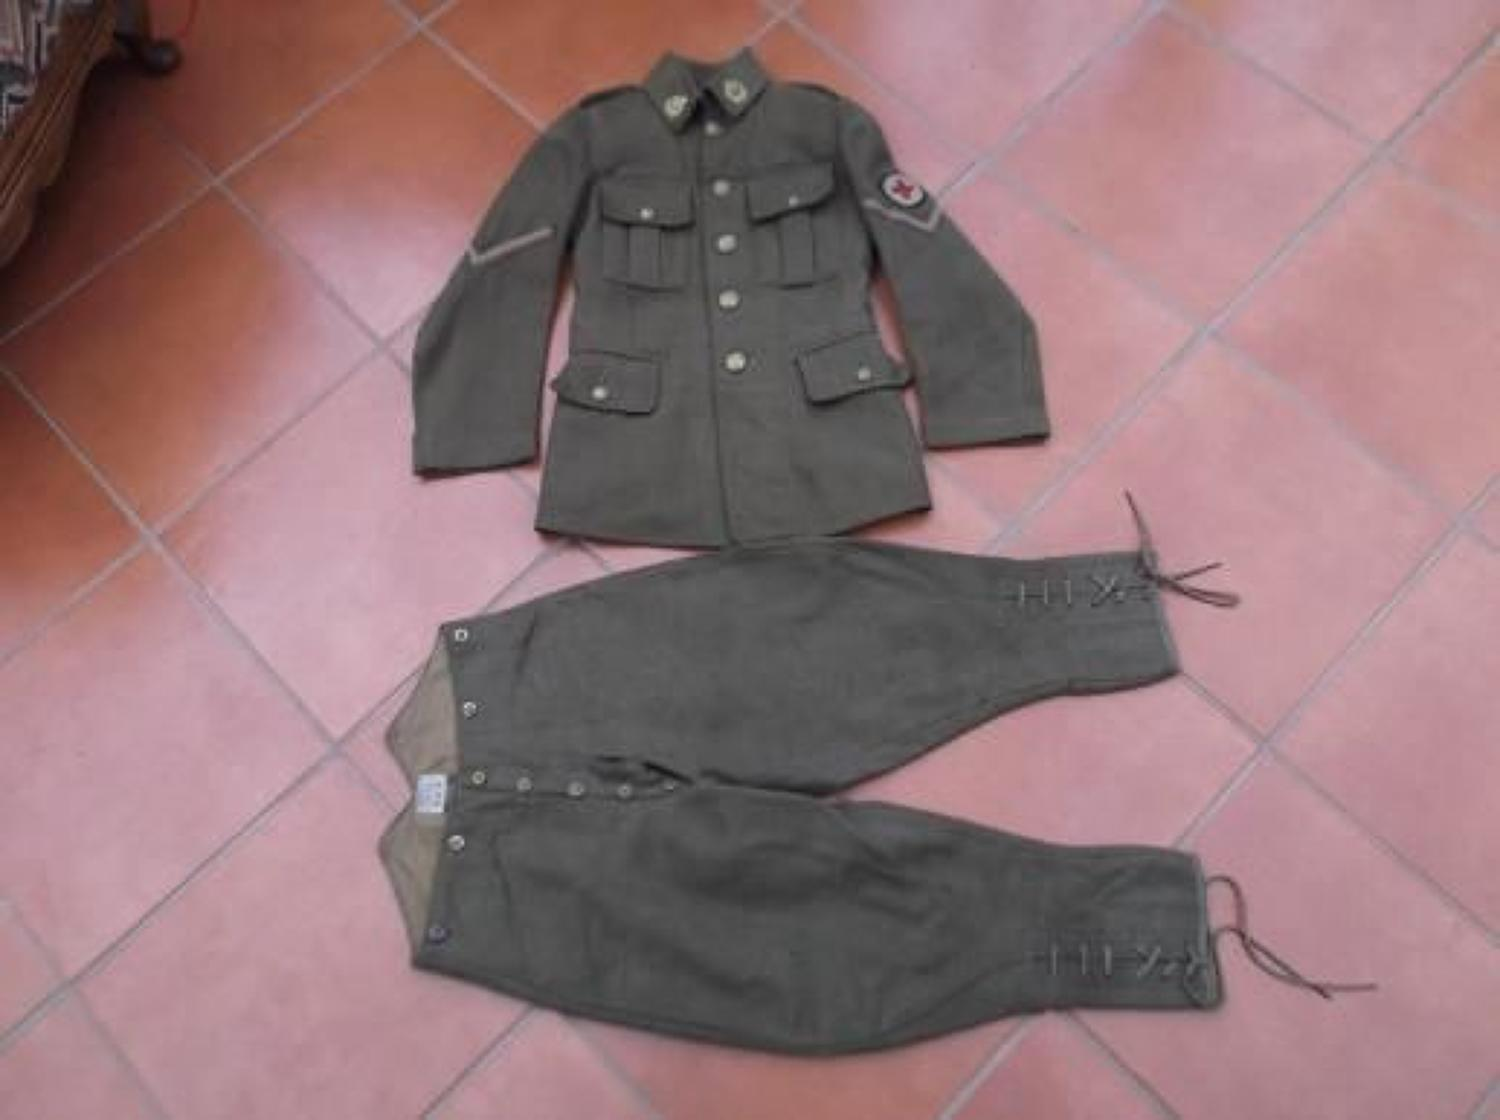 1907 PATTERN BRITISH SERVICE DRESS TUNIC & BREECHES: OFFICER CADET